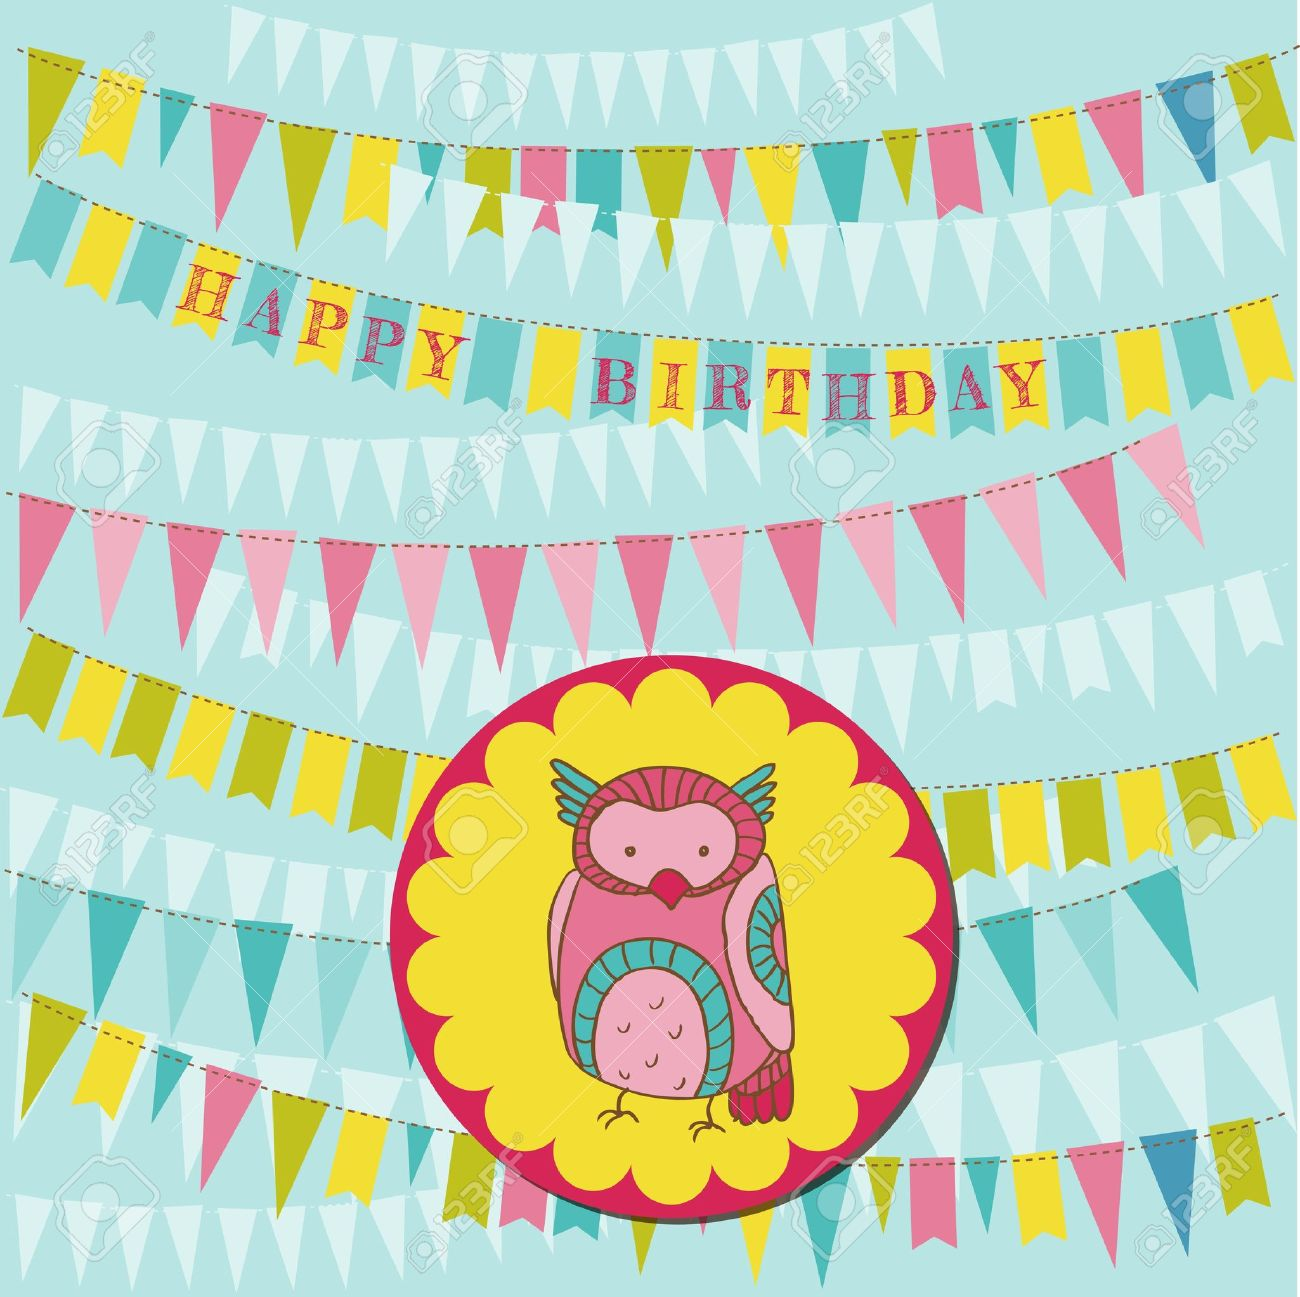 Happy Birthday Card with Cute Owl Stock Vector - 15120315